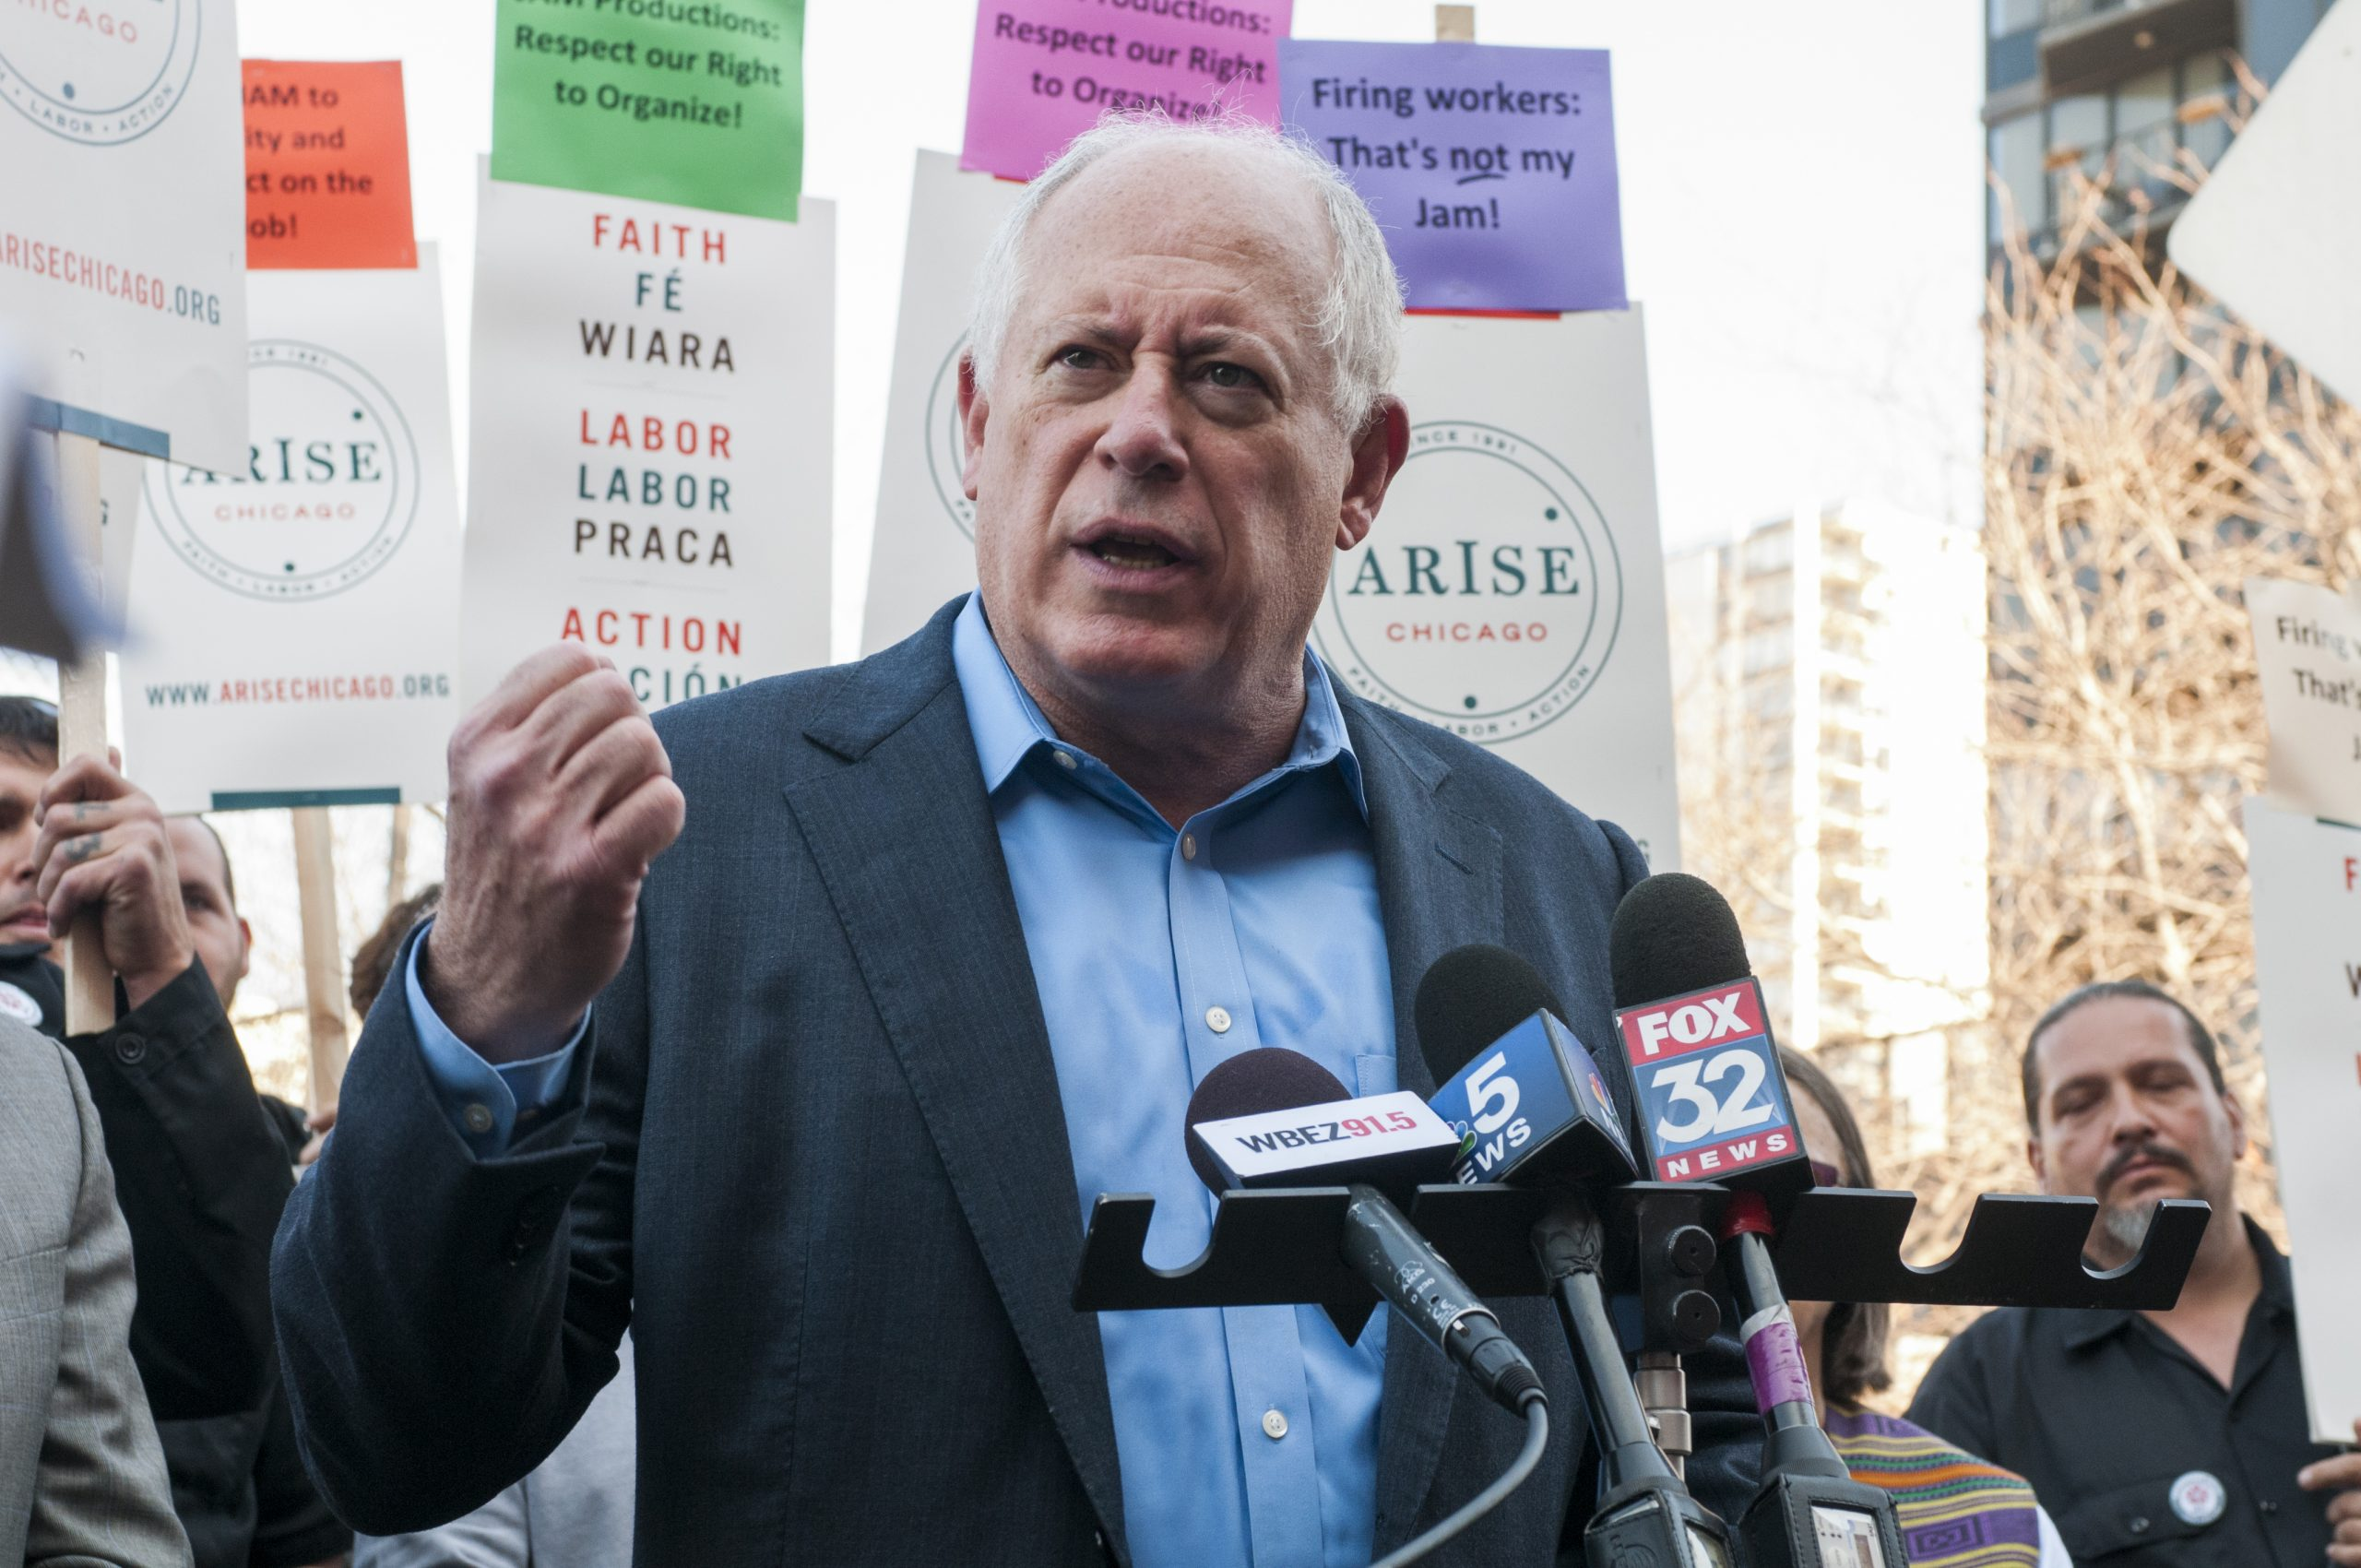 """Former governor Pat Quinn spoke to support the stagehands' union drive: """"The right to organize is fundamental in a democracy."""""""